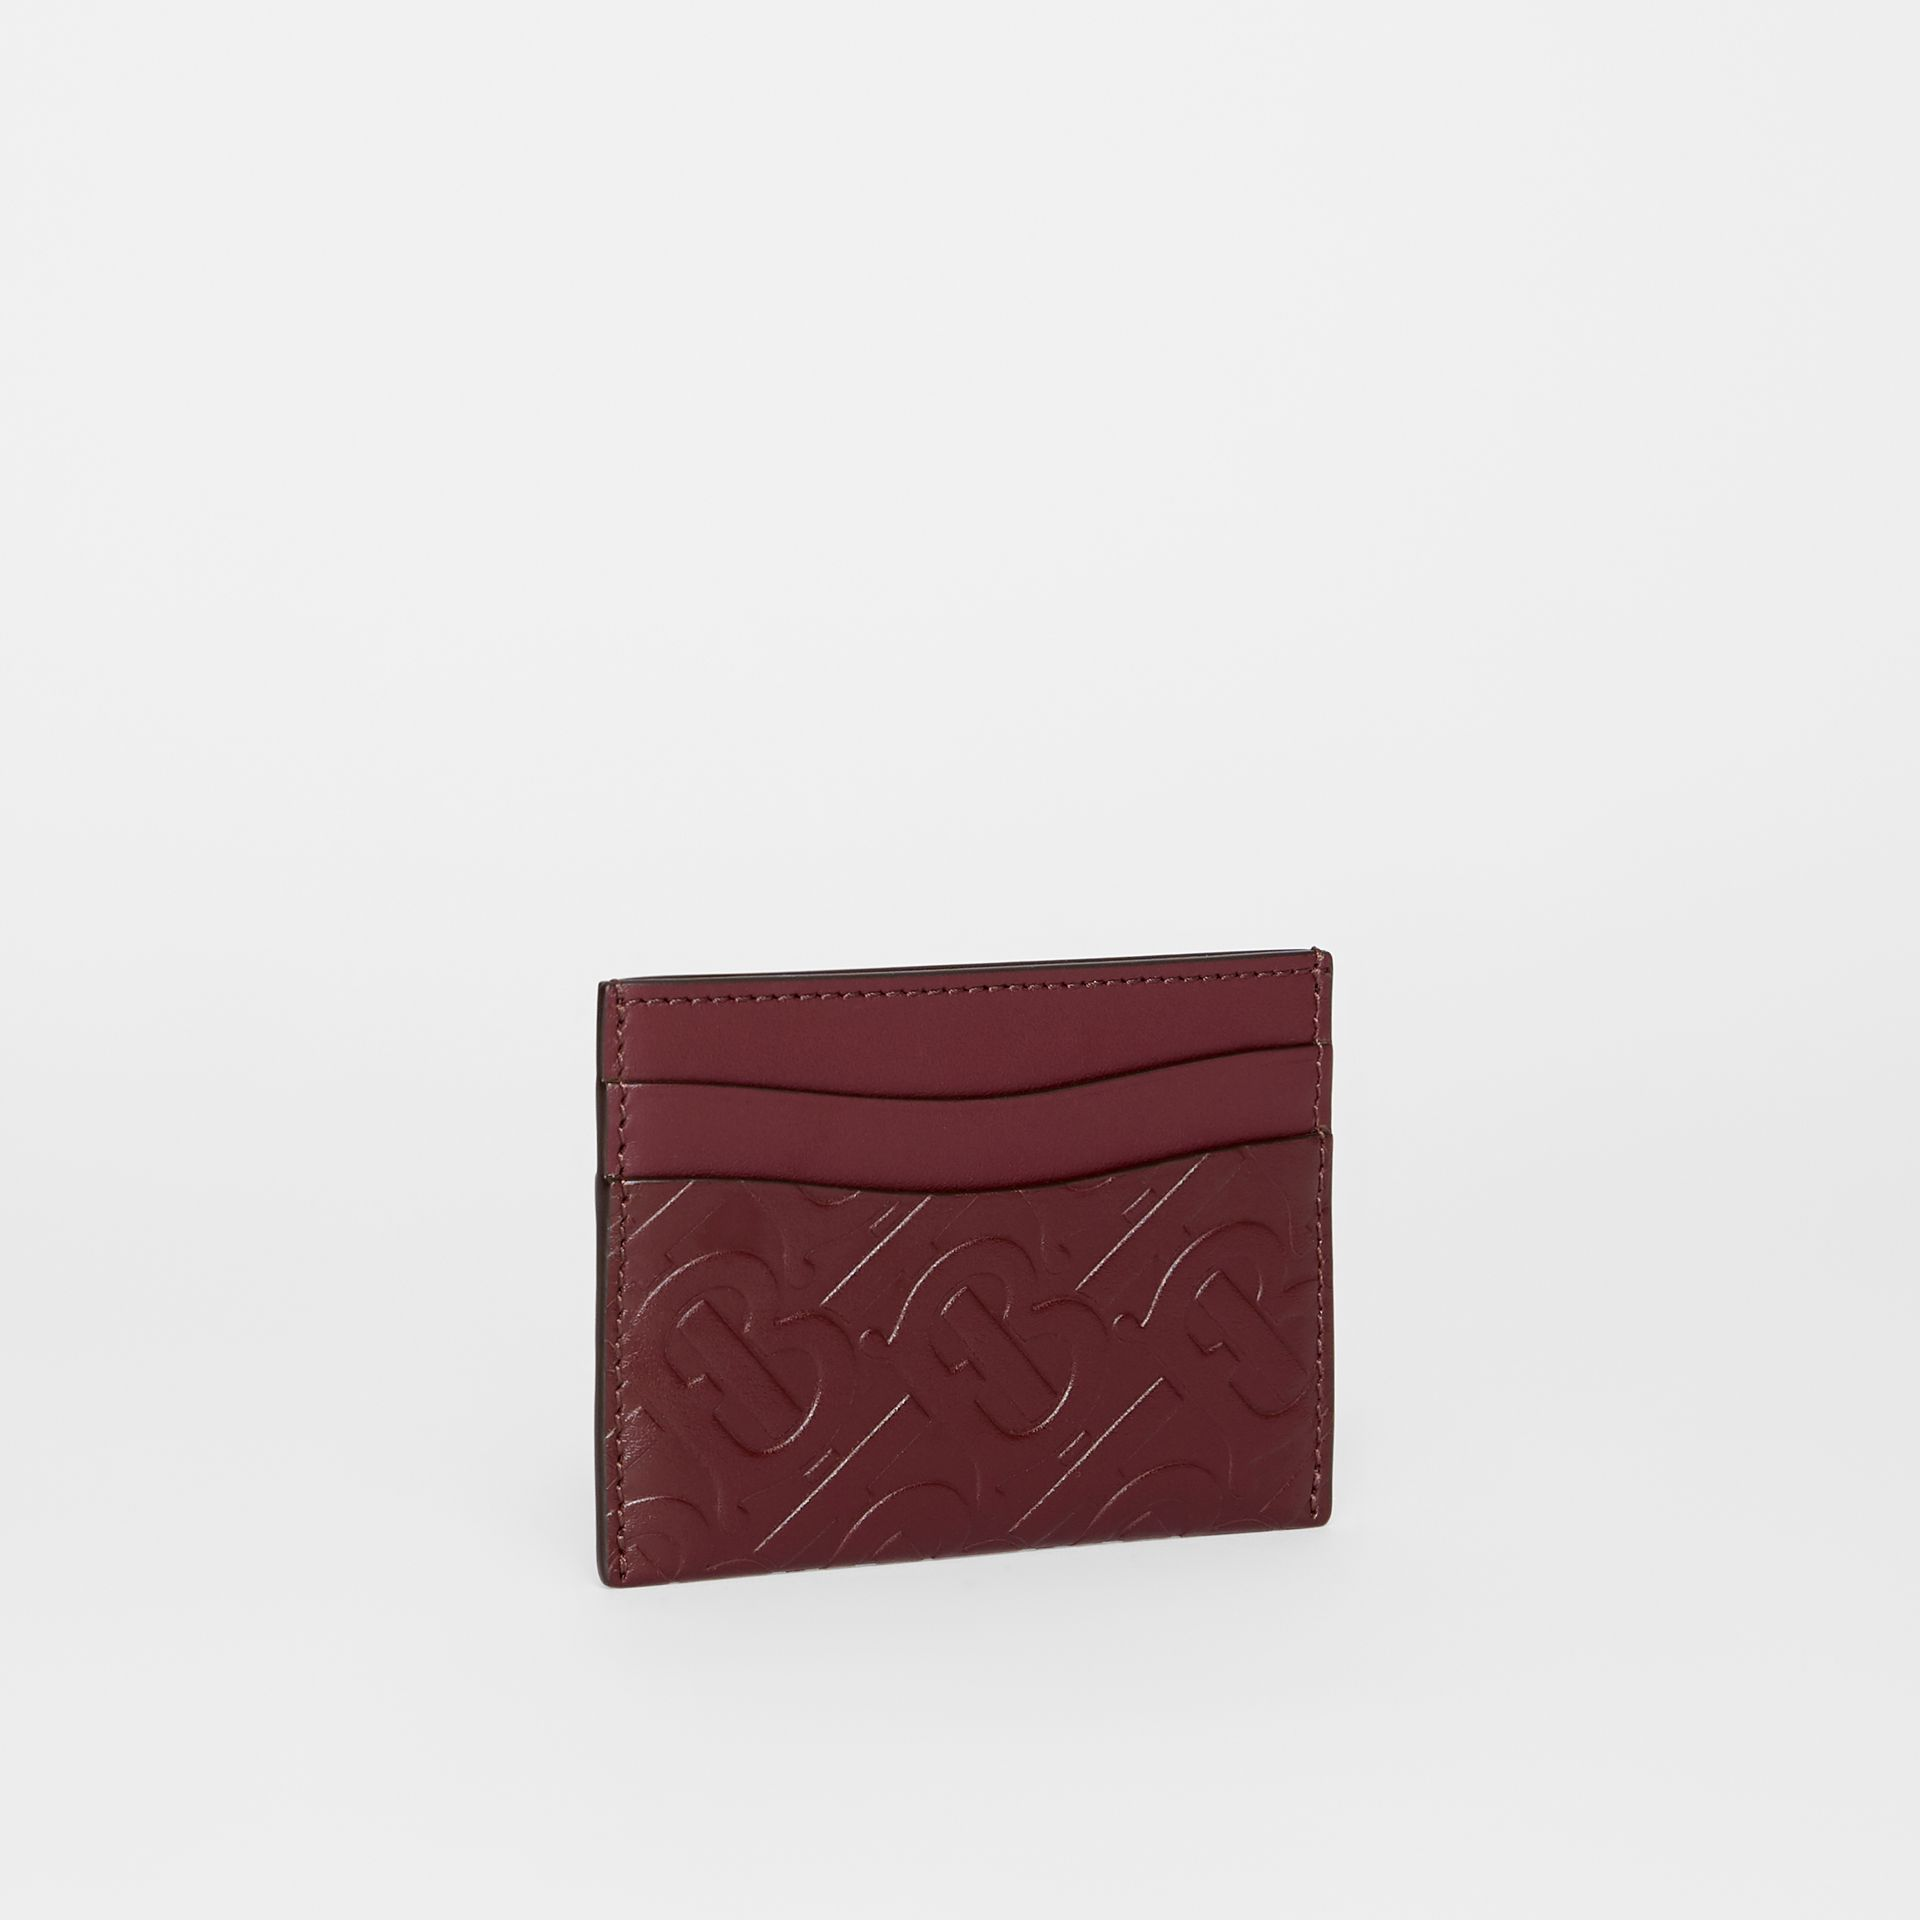 Monogram Leather Card Case in Oxblood - Women | Burberry Australia - gallery image 3